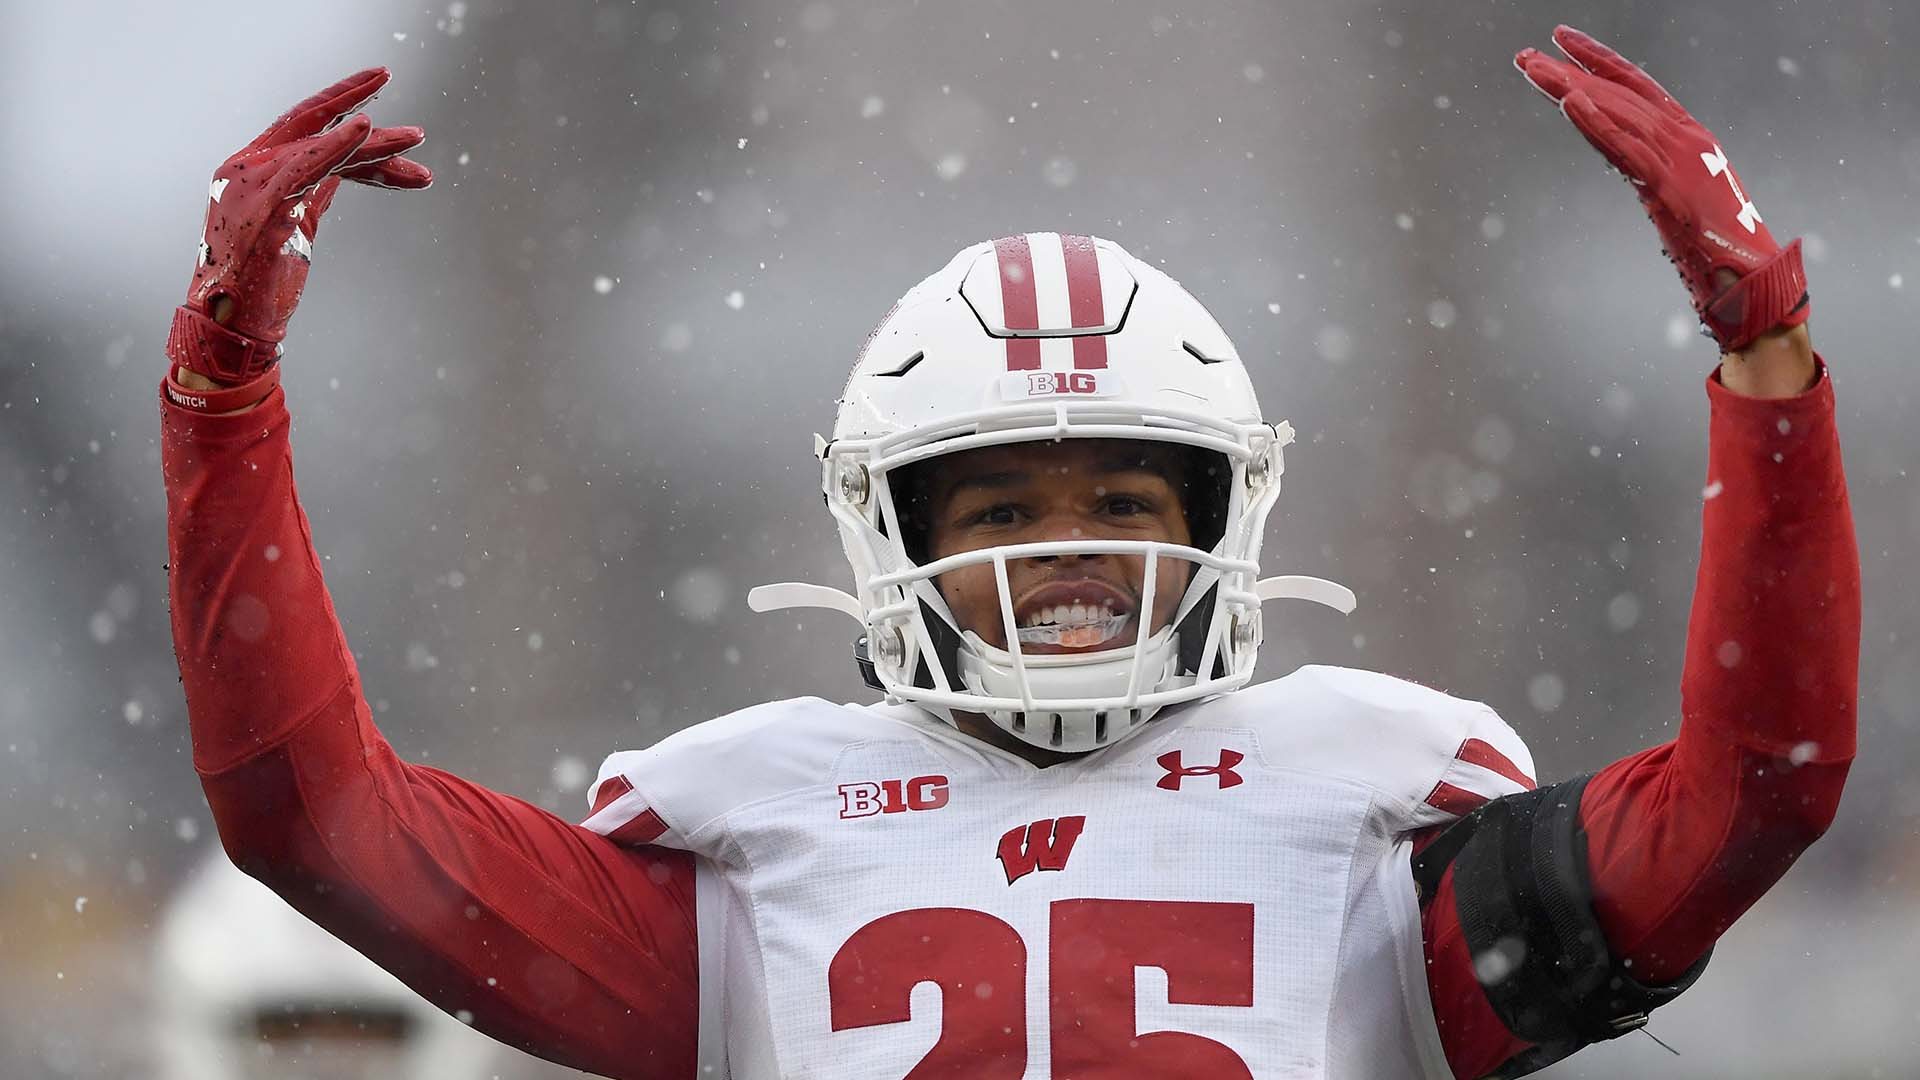 Could Wisconsin Beat Ohio State In The Big Ten Championship